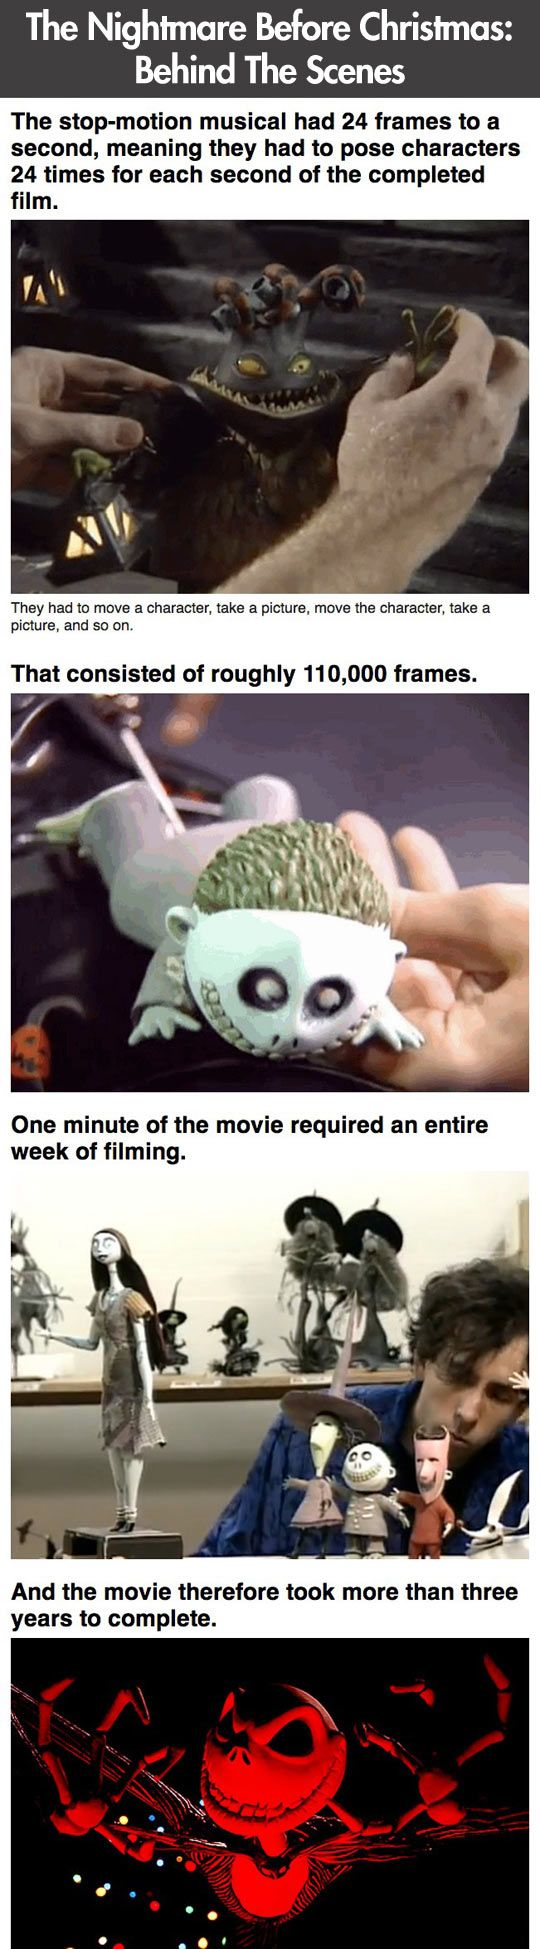 Facts you (probably) didn't know about The Nightmare Before Christmas…